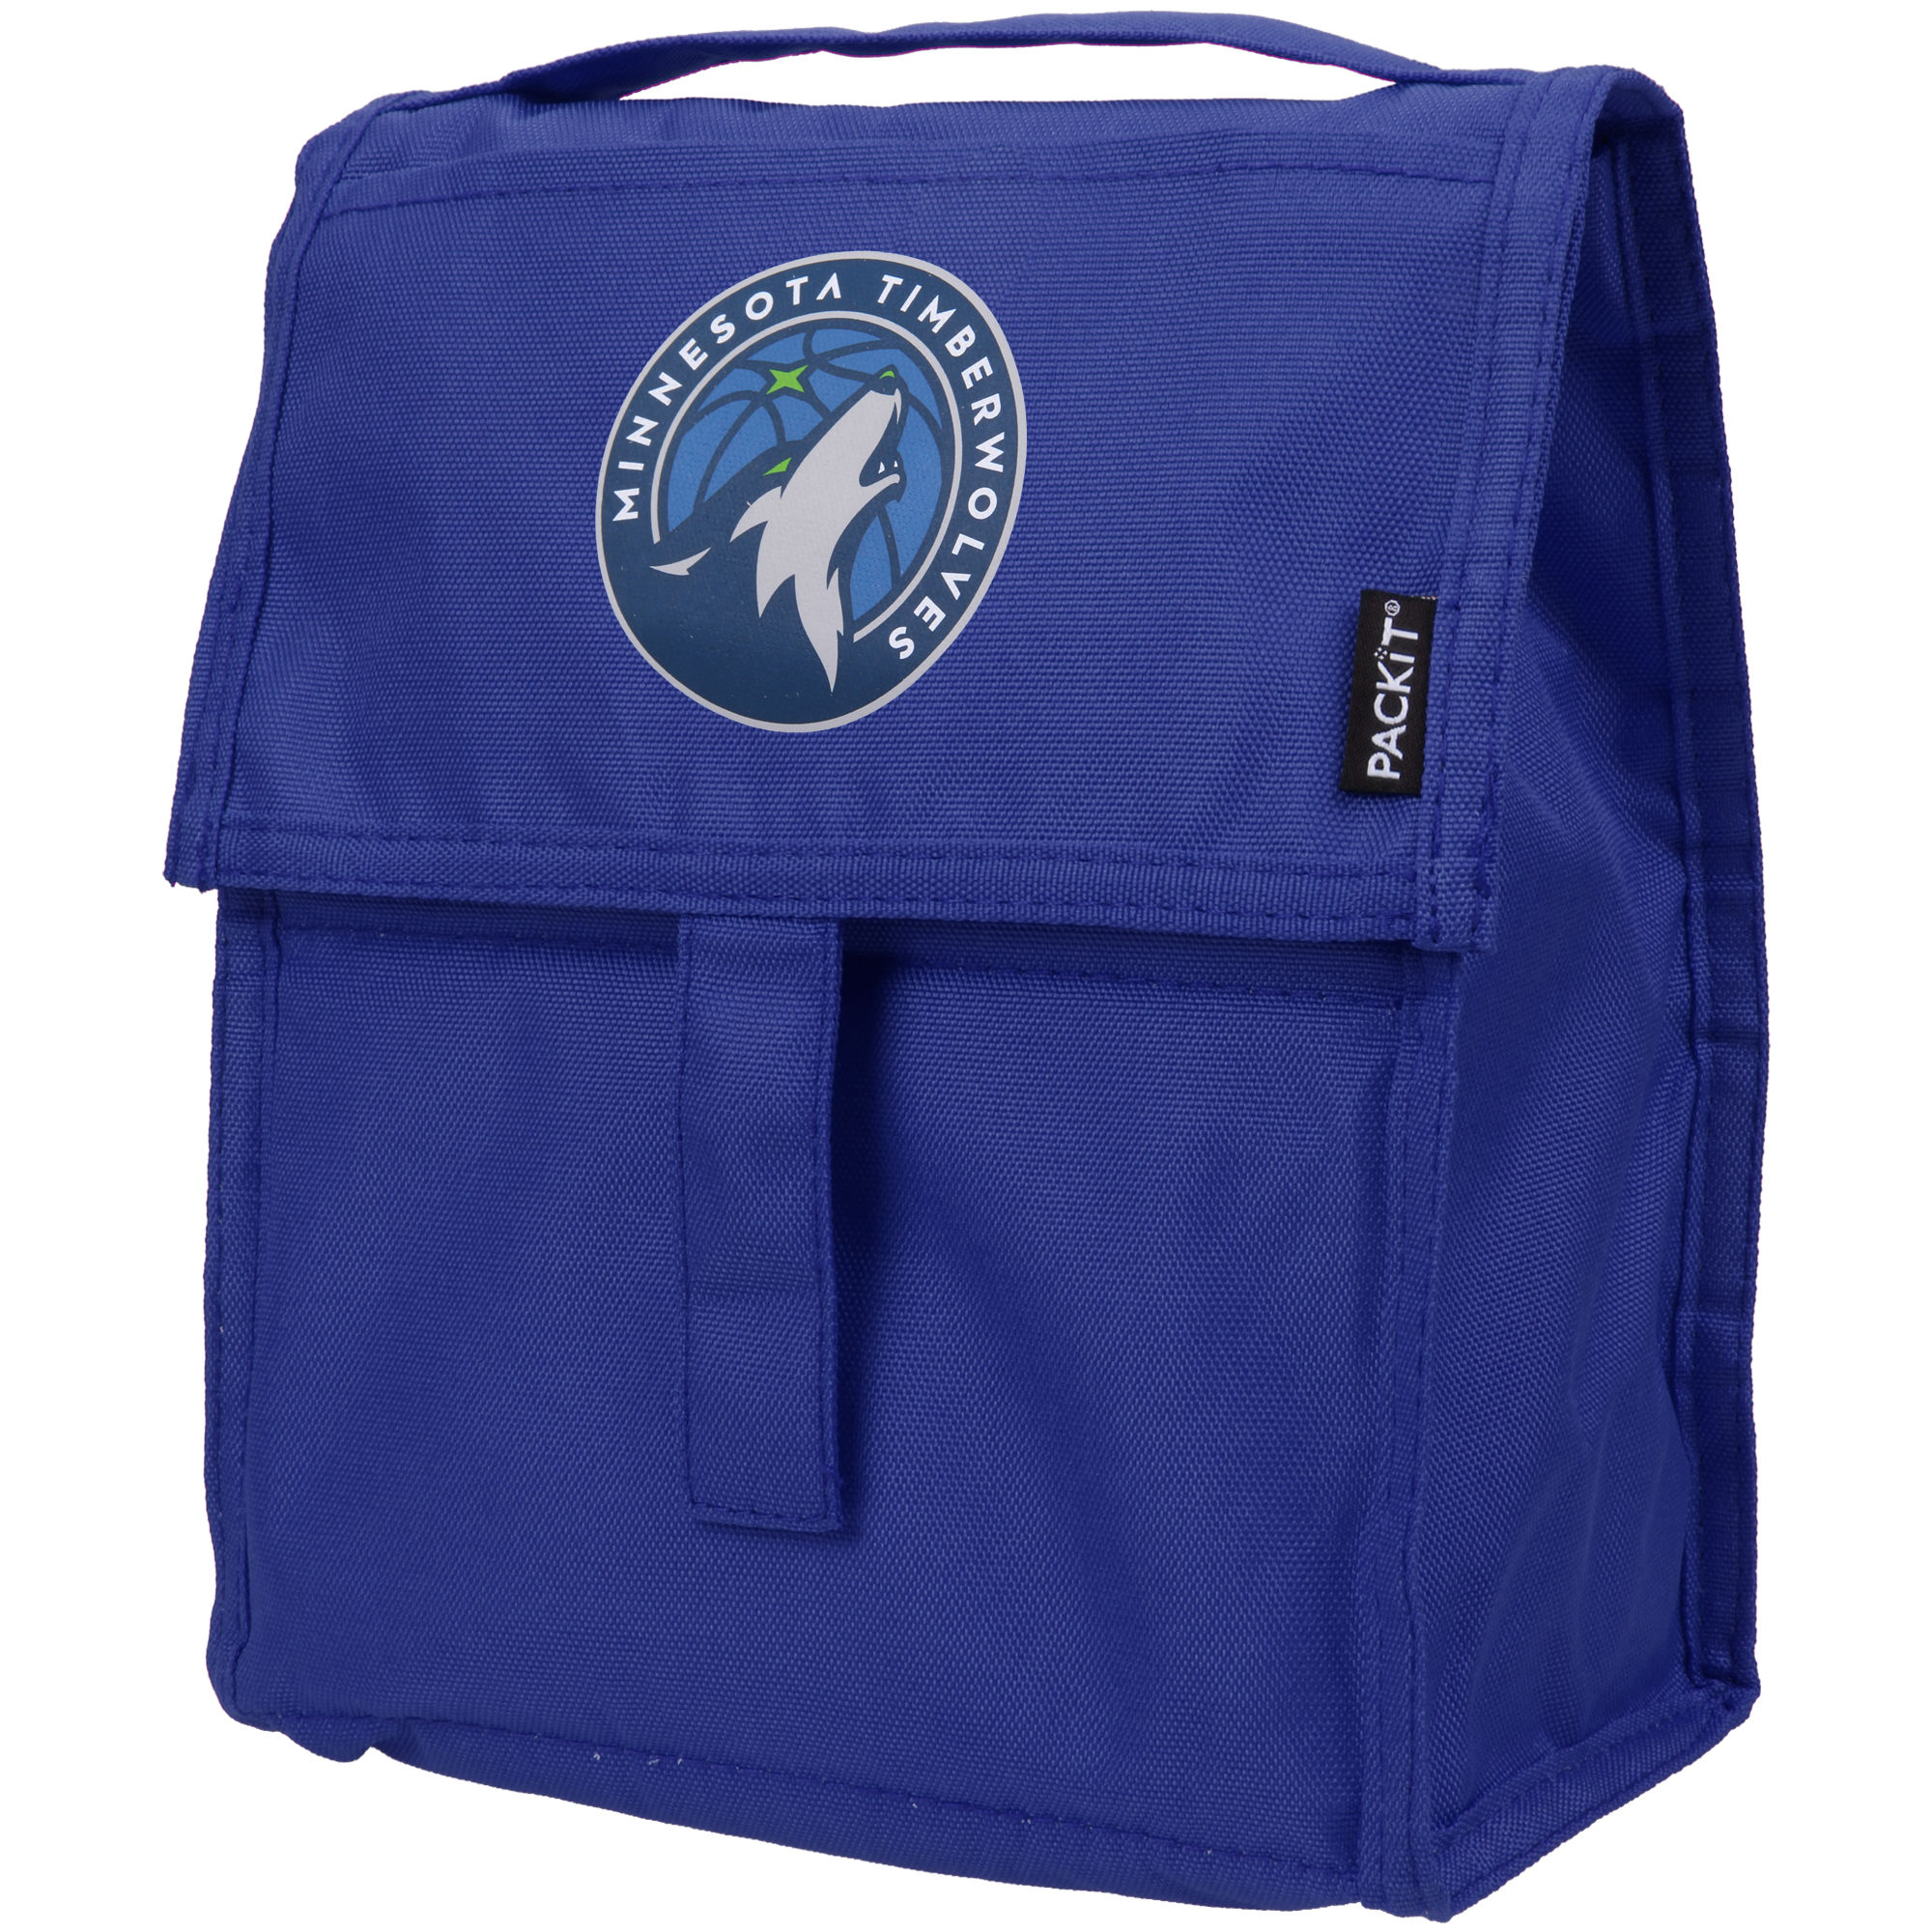 Minnesota Timberwolves PackIt Lunch Box - No Size